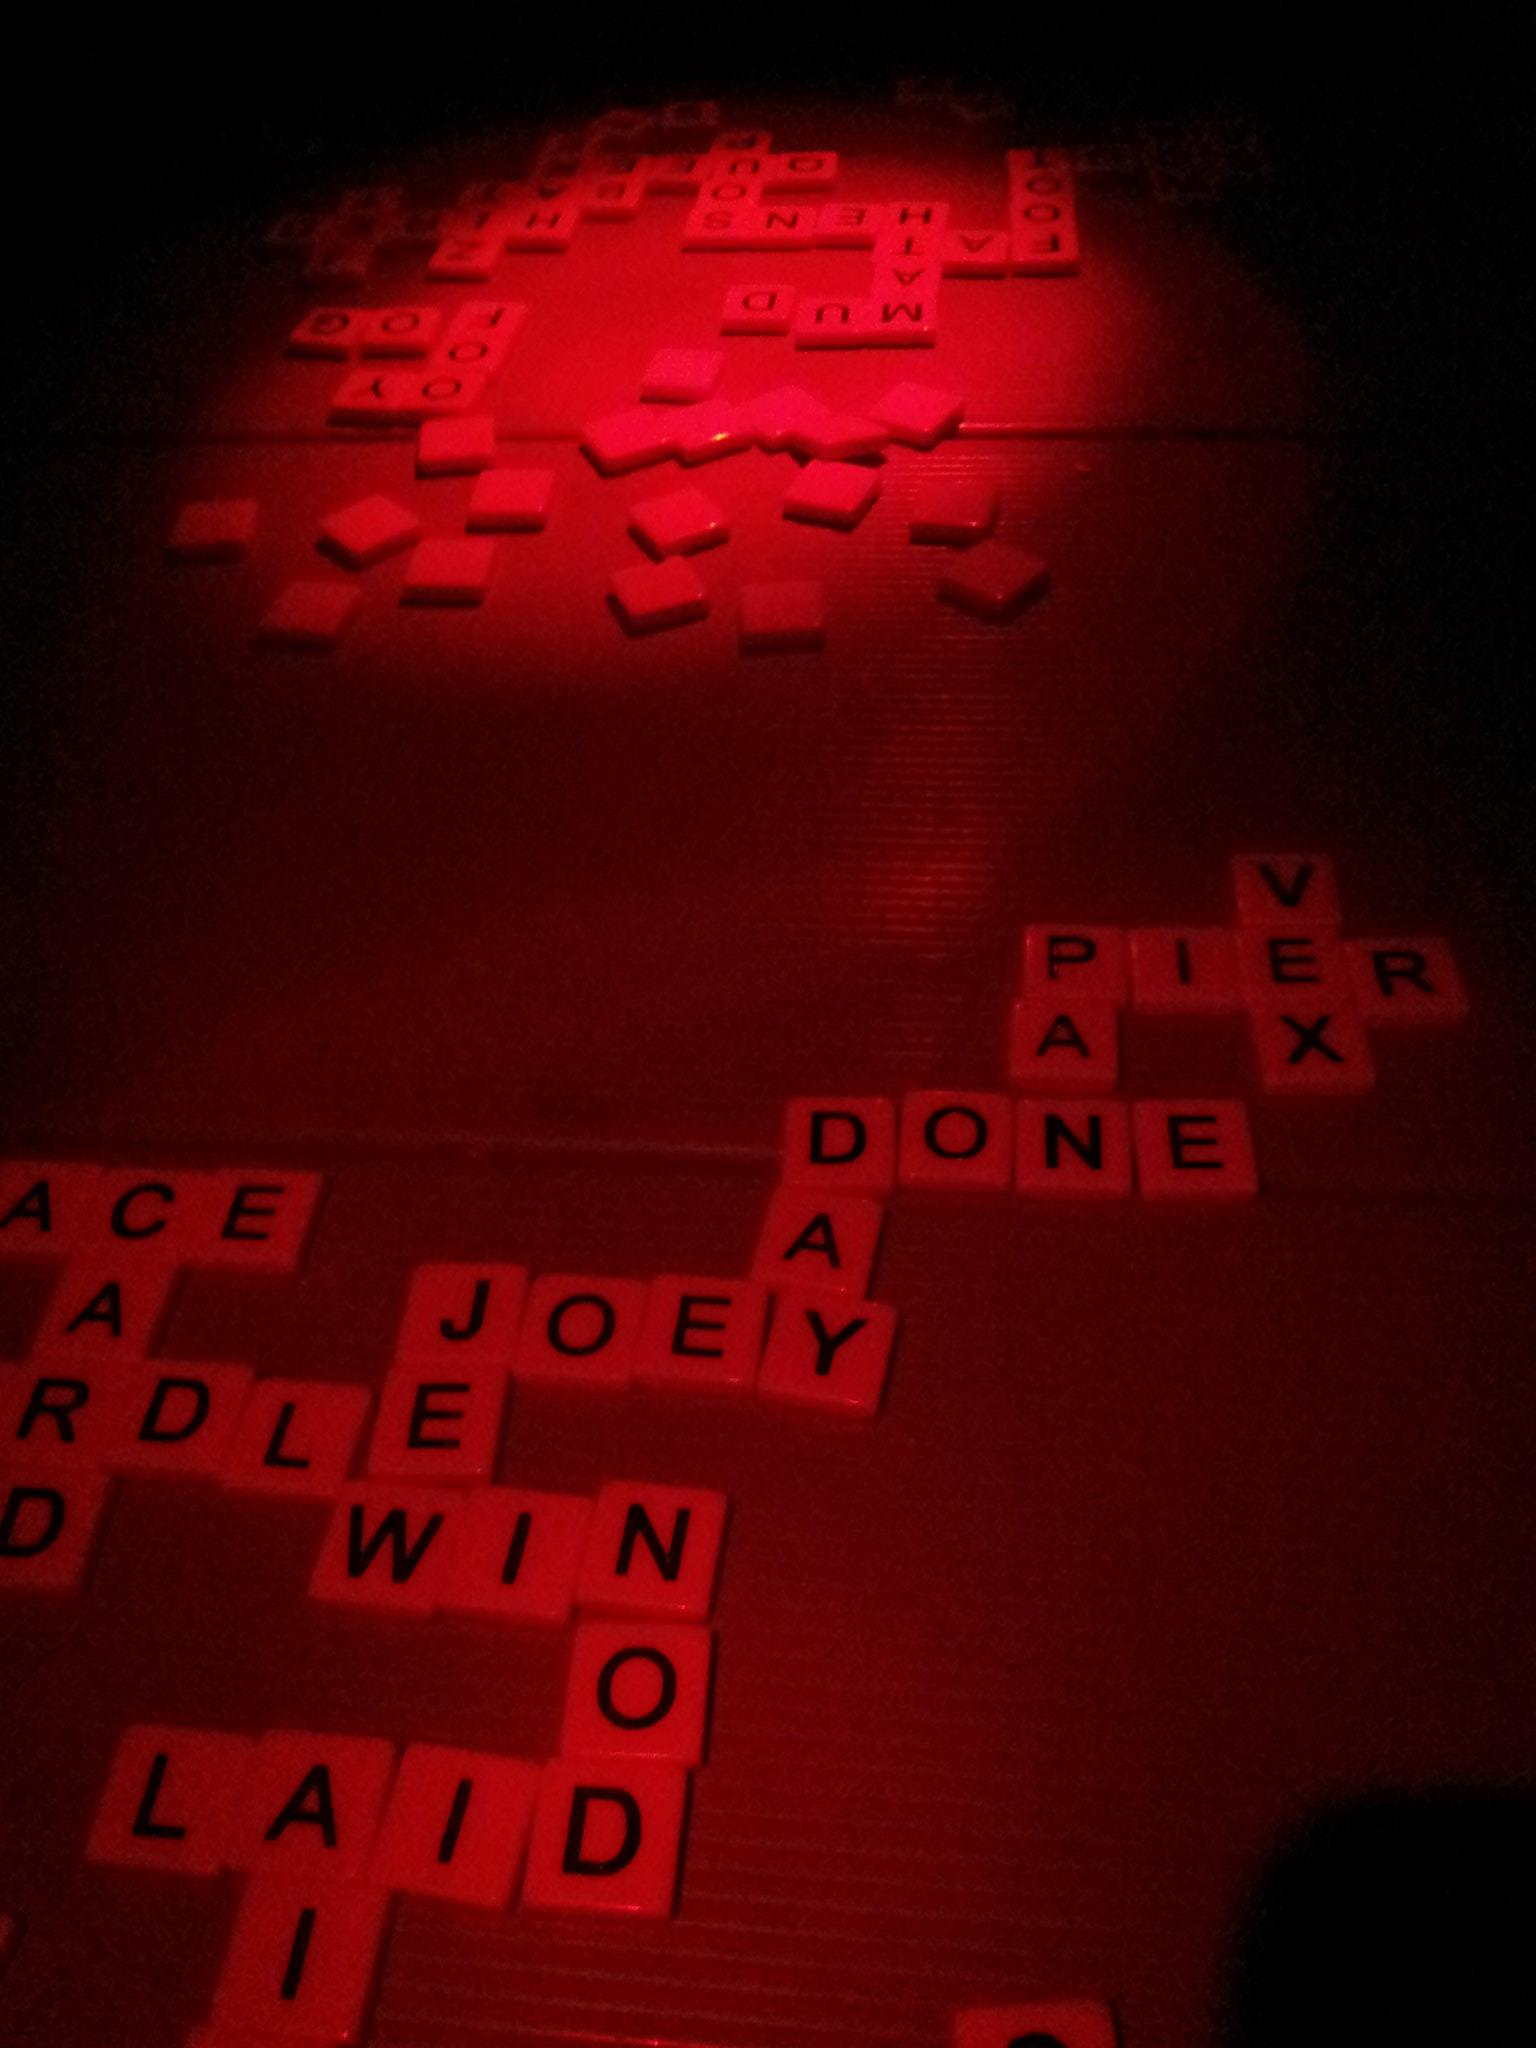 Our nightly entertainment of bananagrams